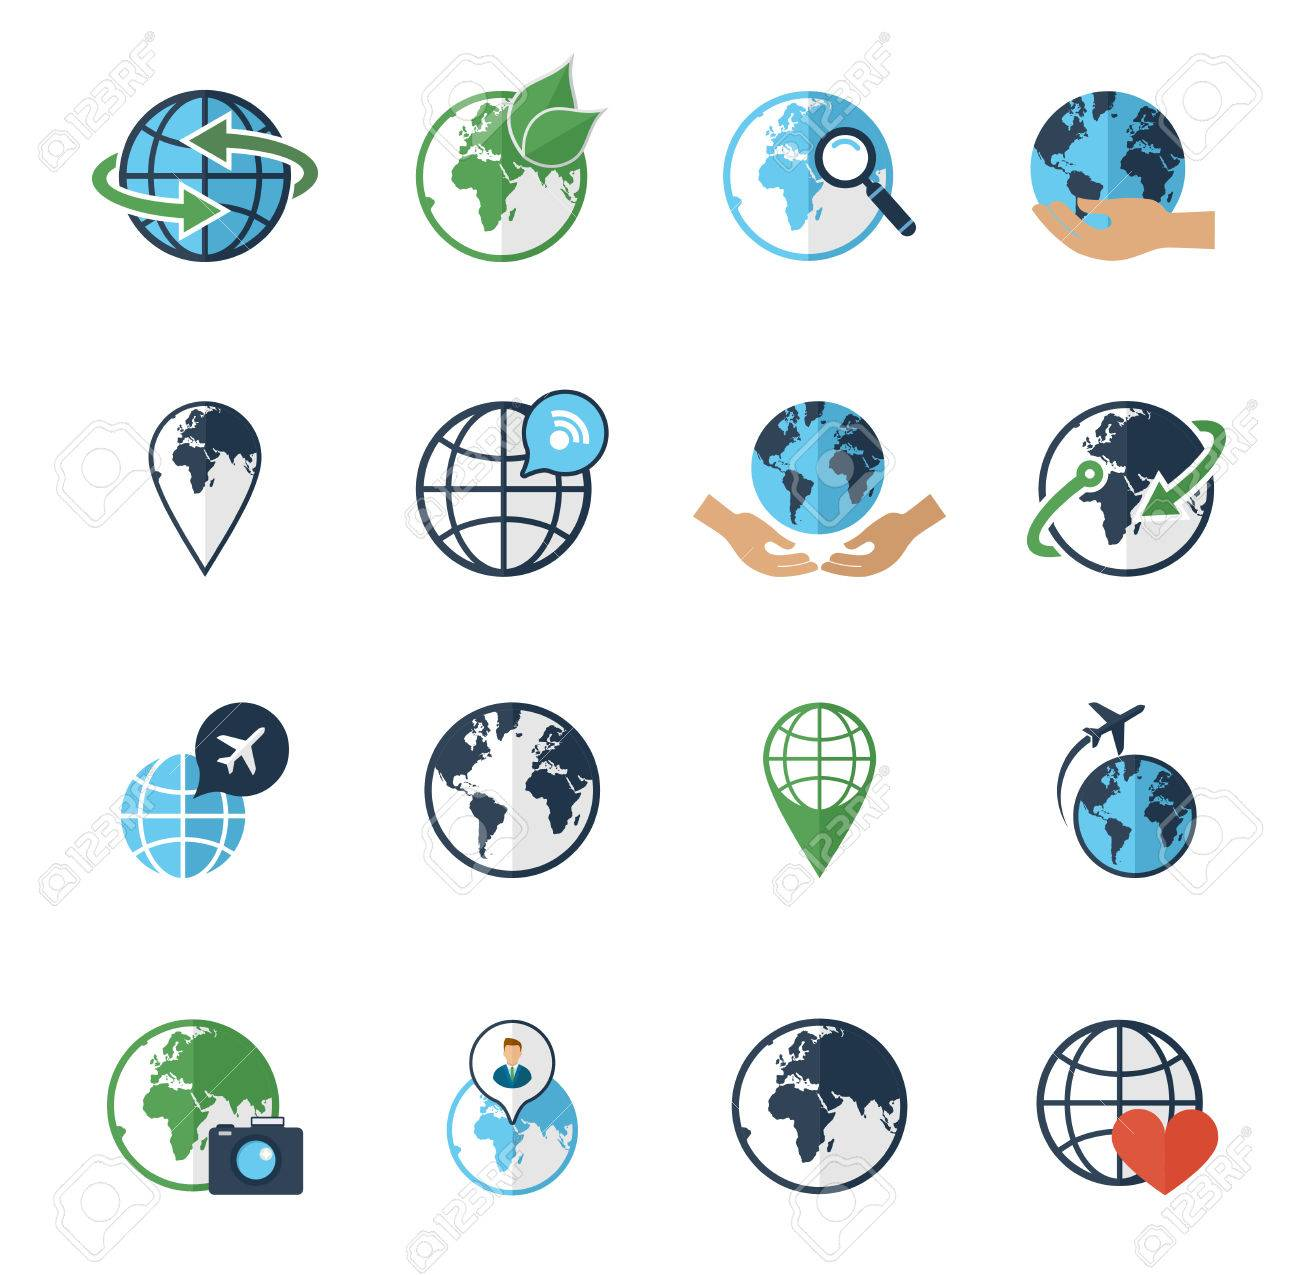 Global earth environment friendly transportation round world global earth environment friendly transportation round world map flight symbols flat icons set abstract isolated vector gumiabroncs Gallery